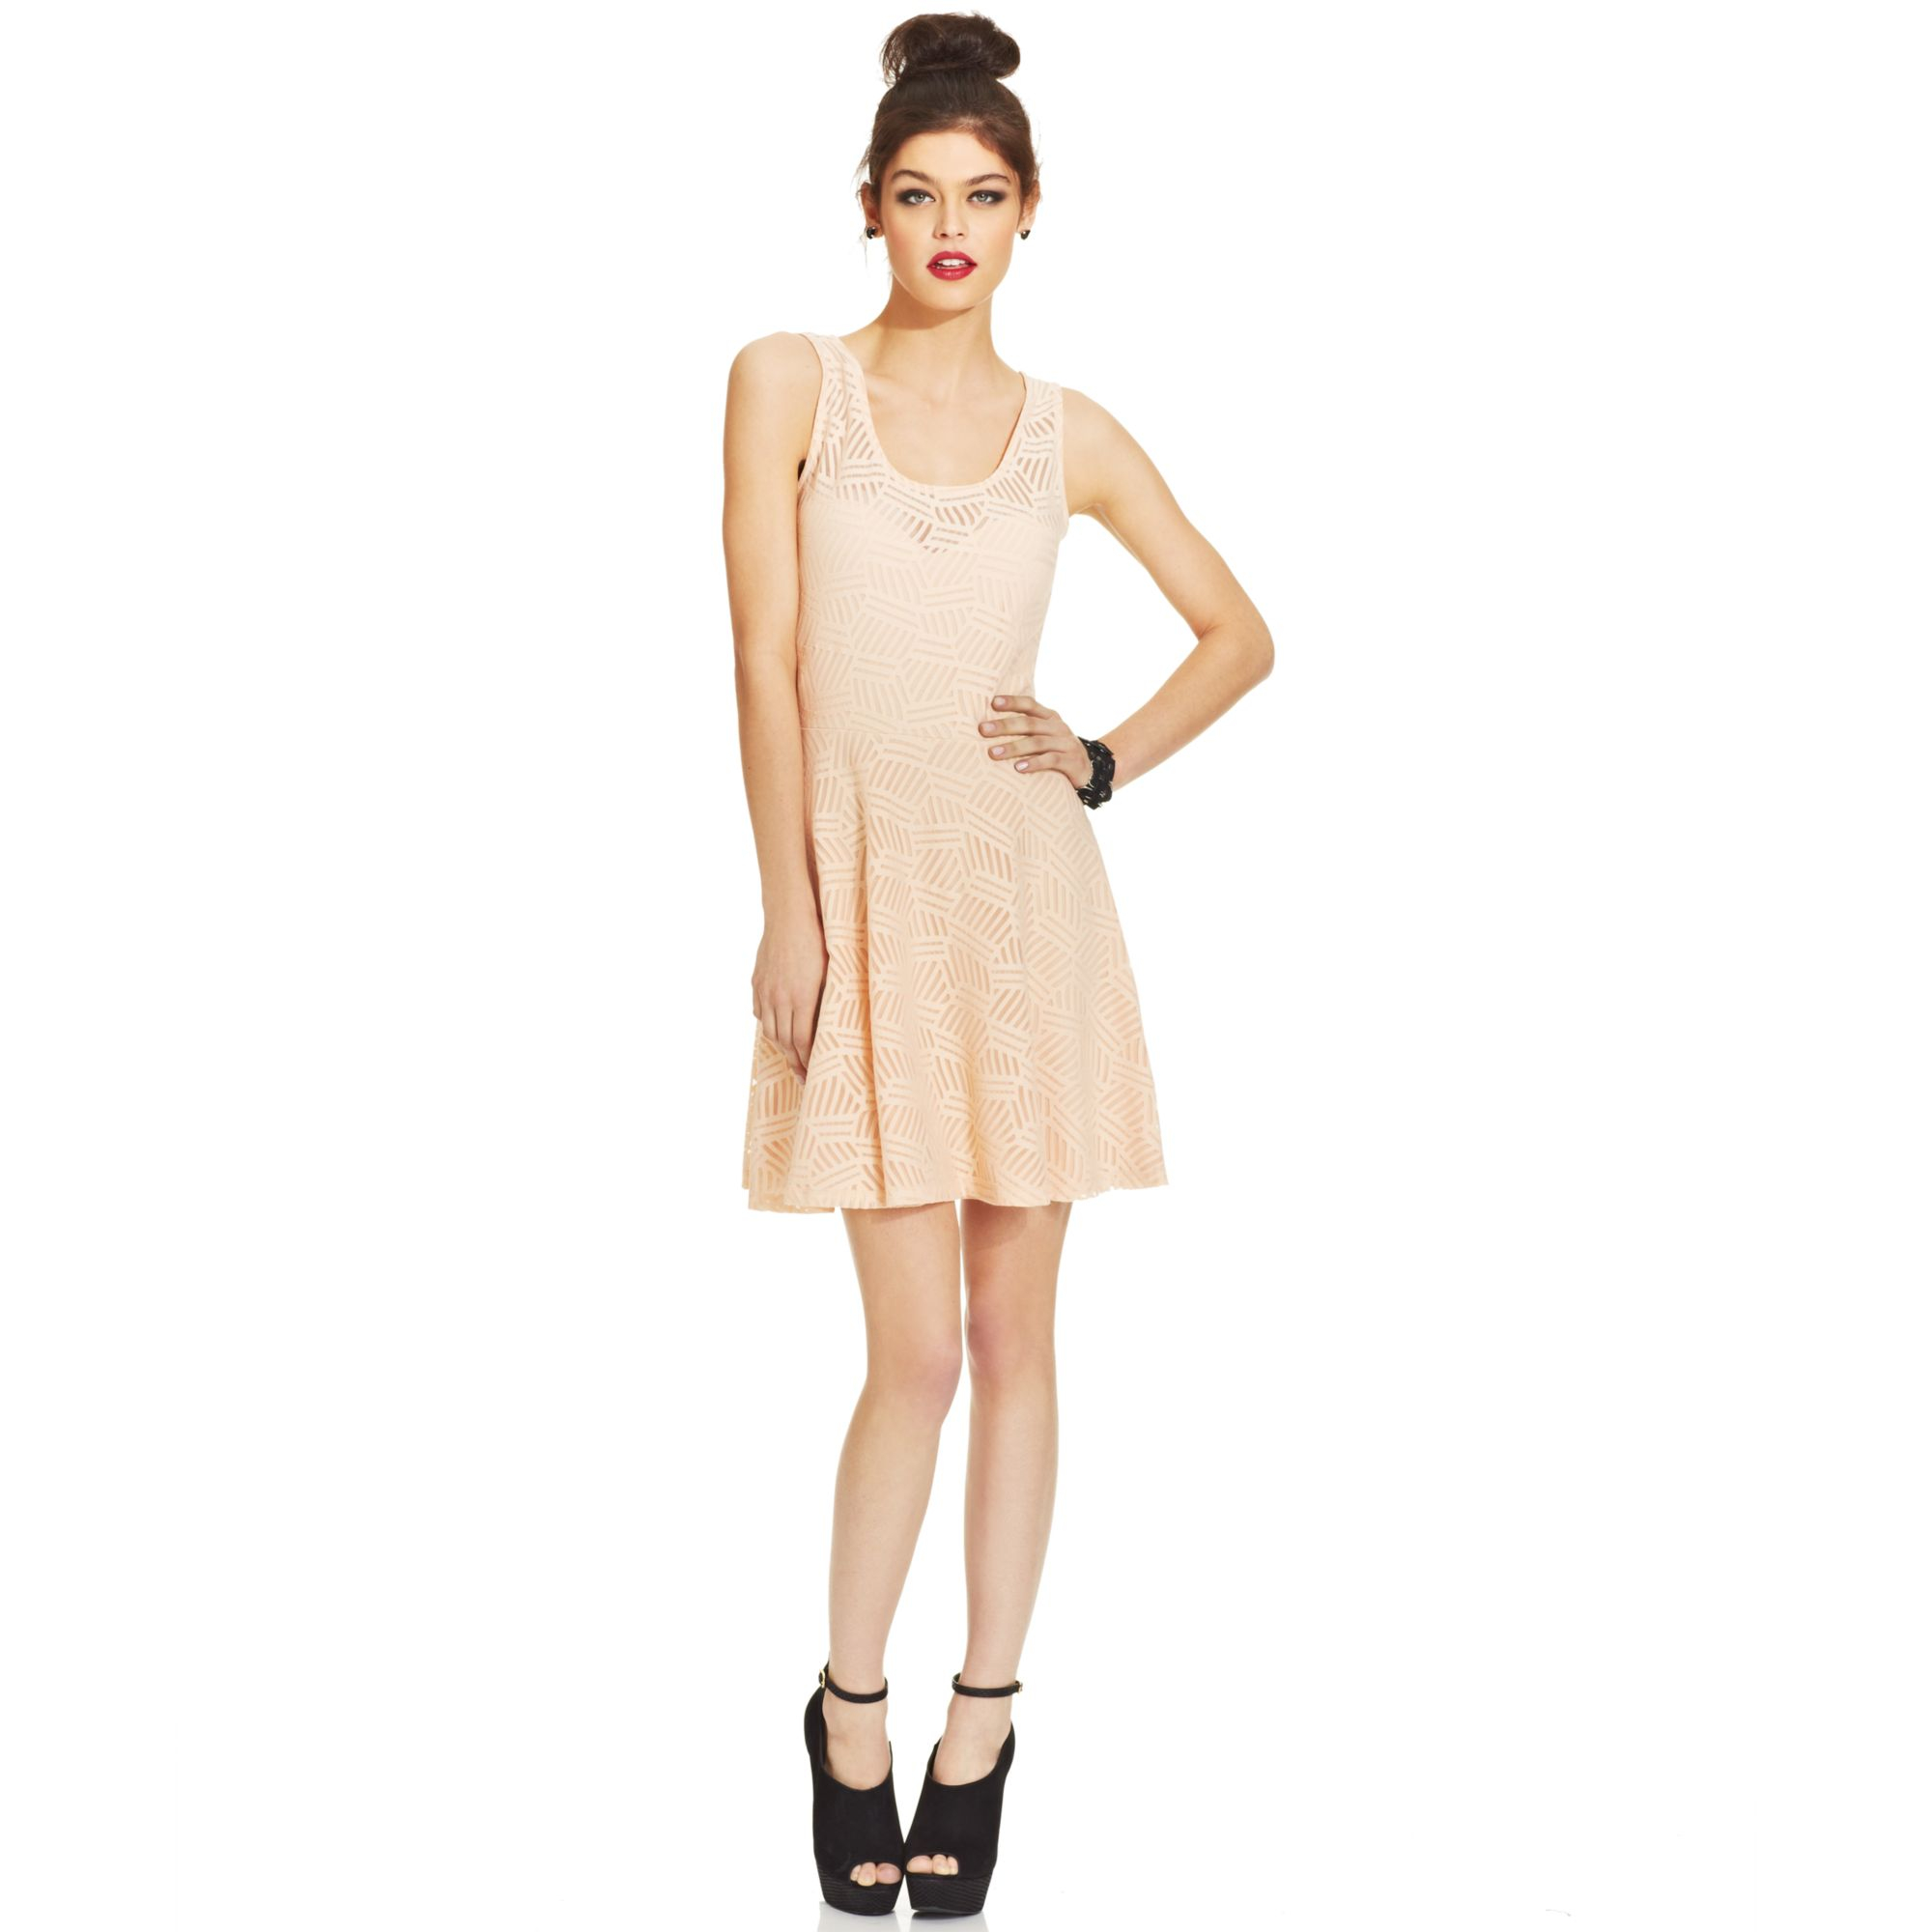 Lyst - Material Girl Juniors Lace Skater Dress in Natural 6a291f1be